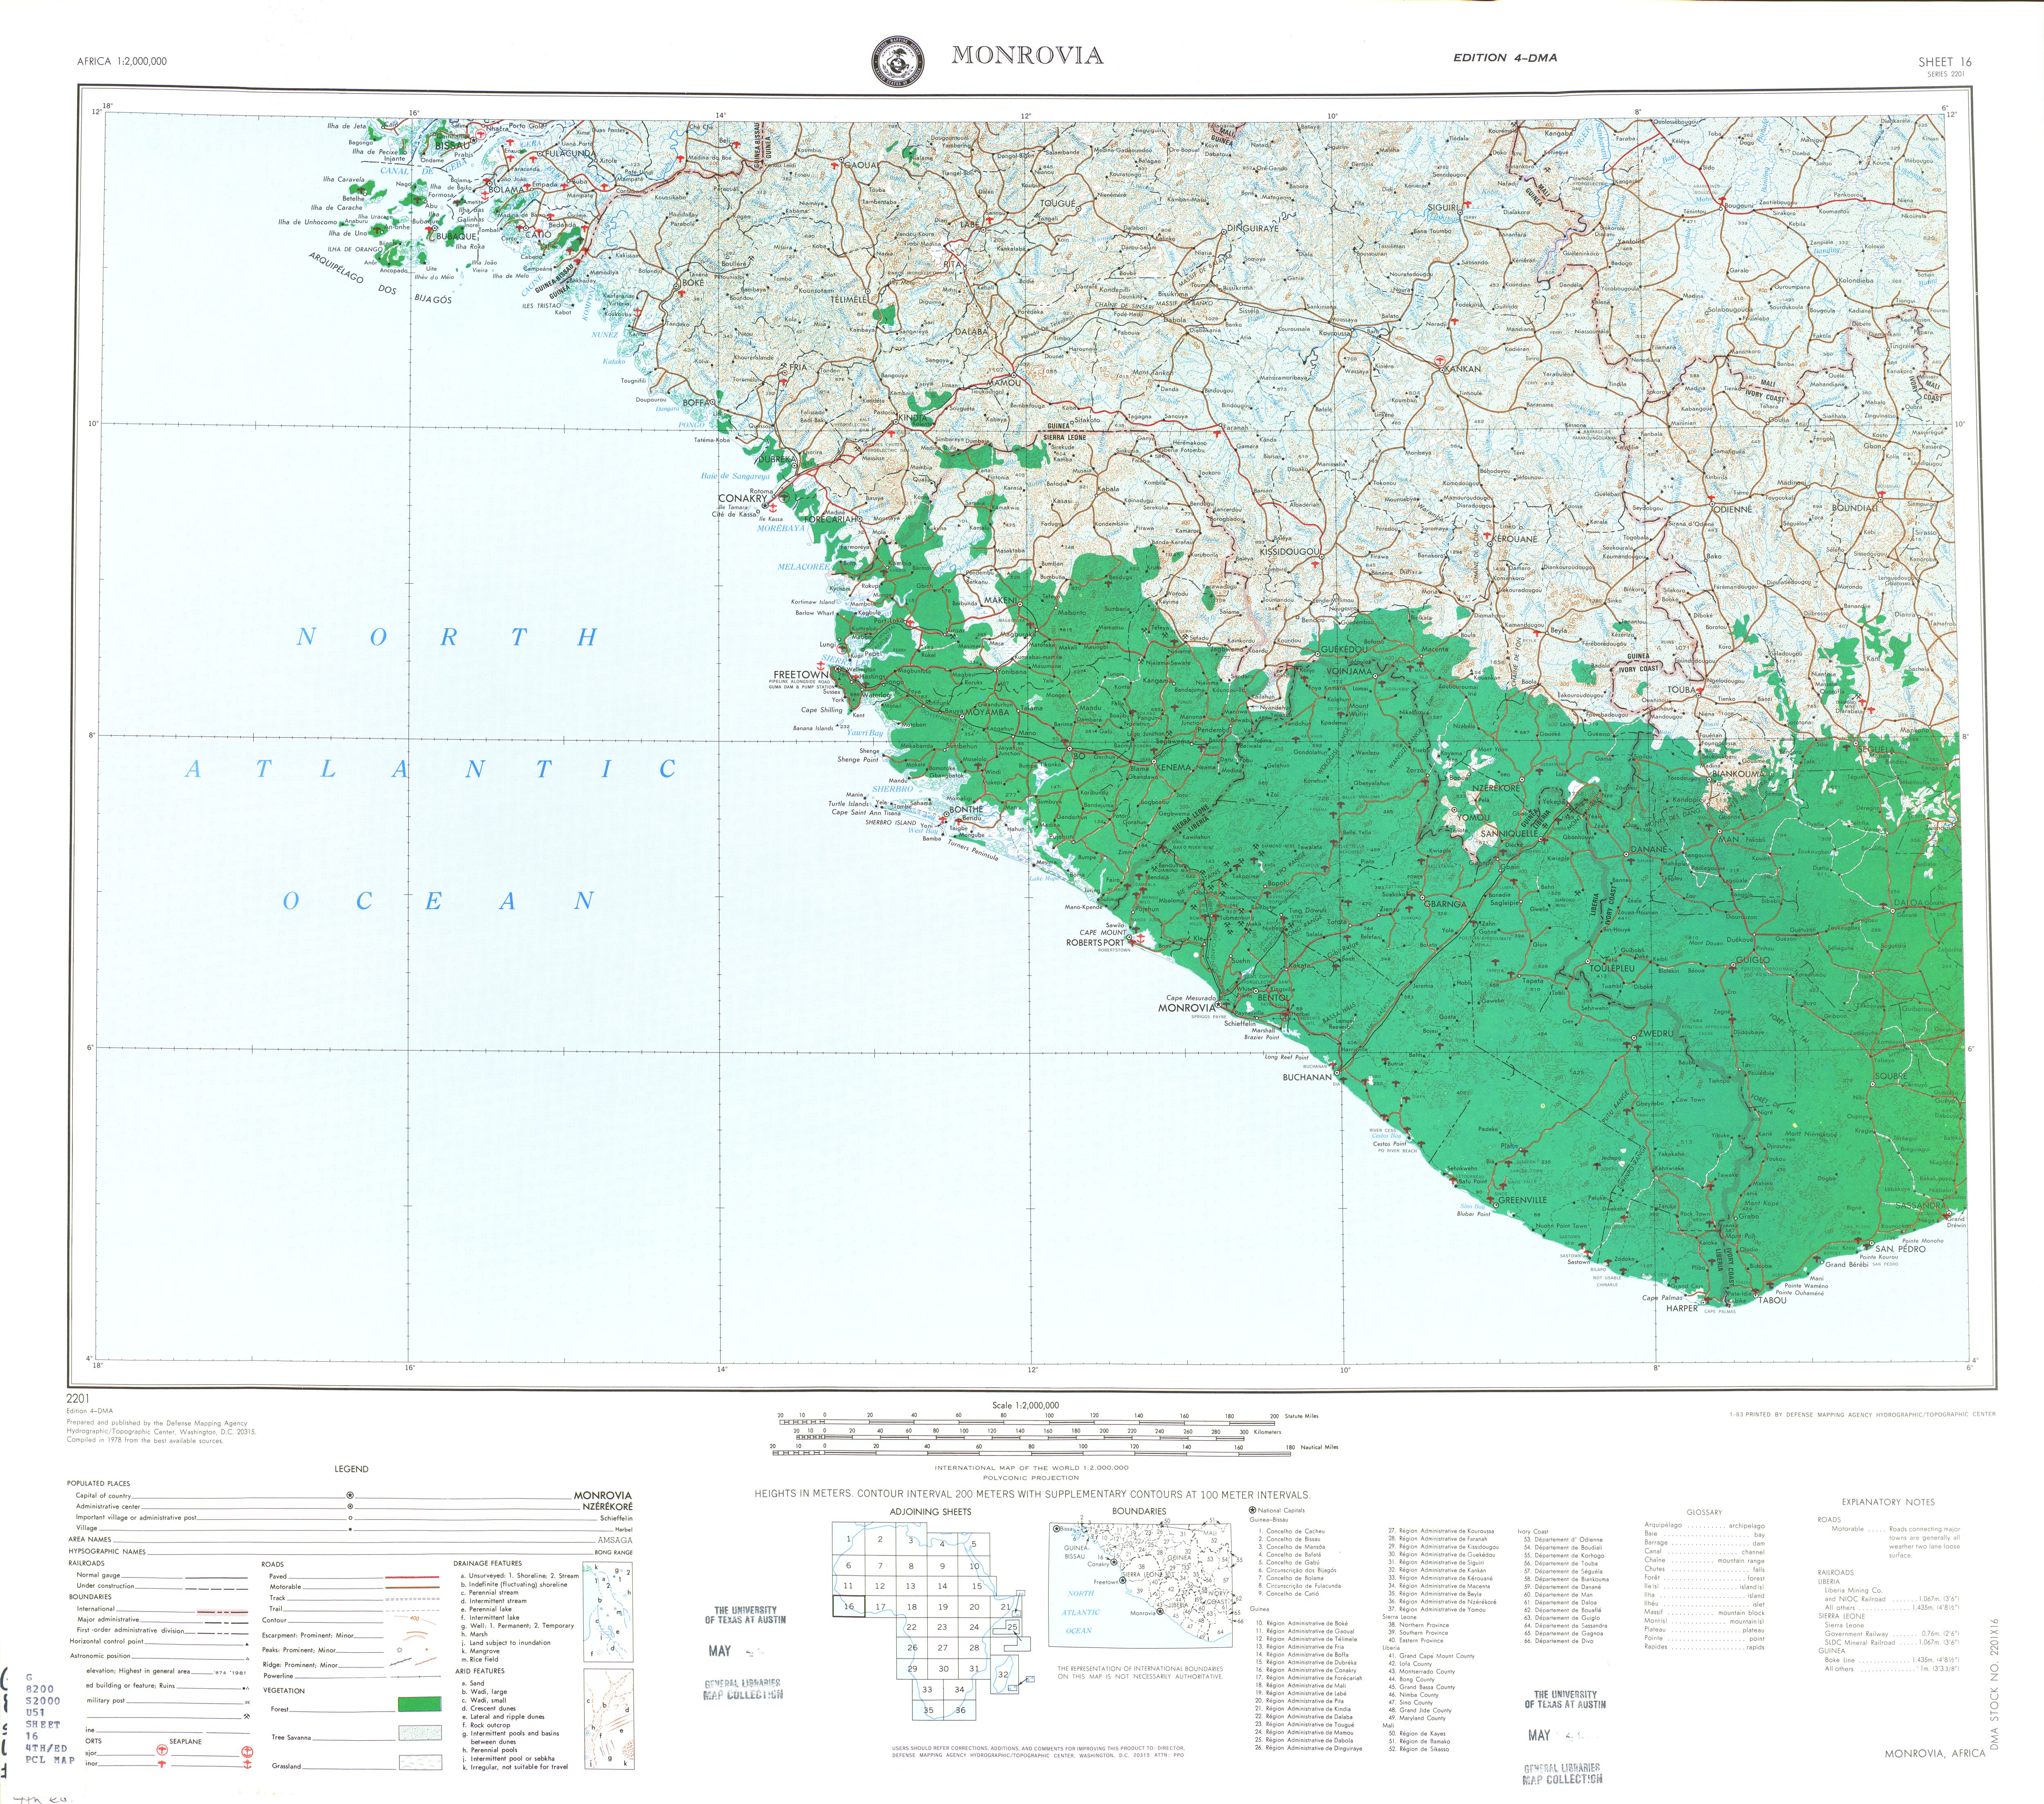 Monrovia Topographic Sheet Map, Africa 1978